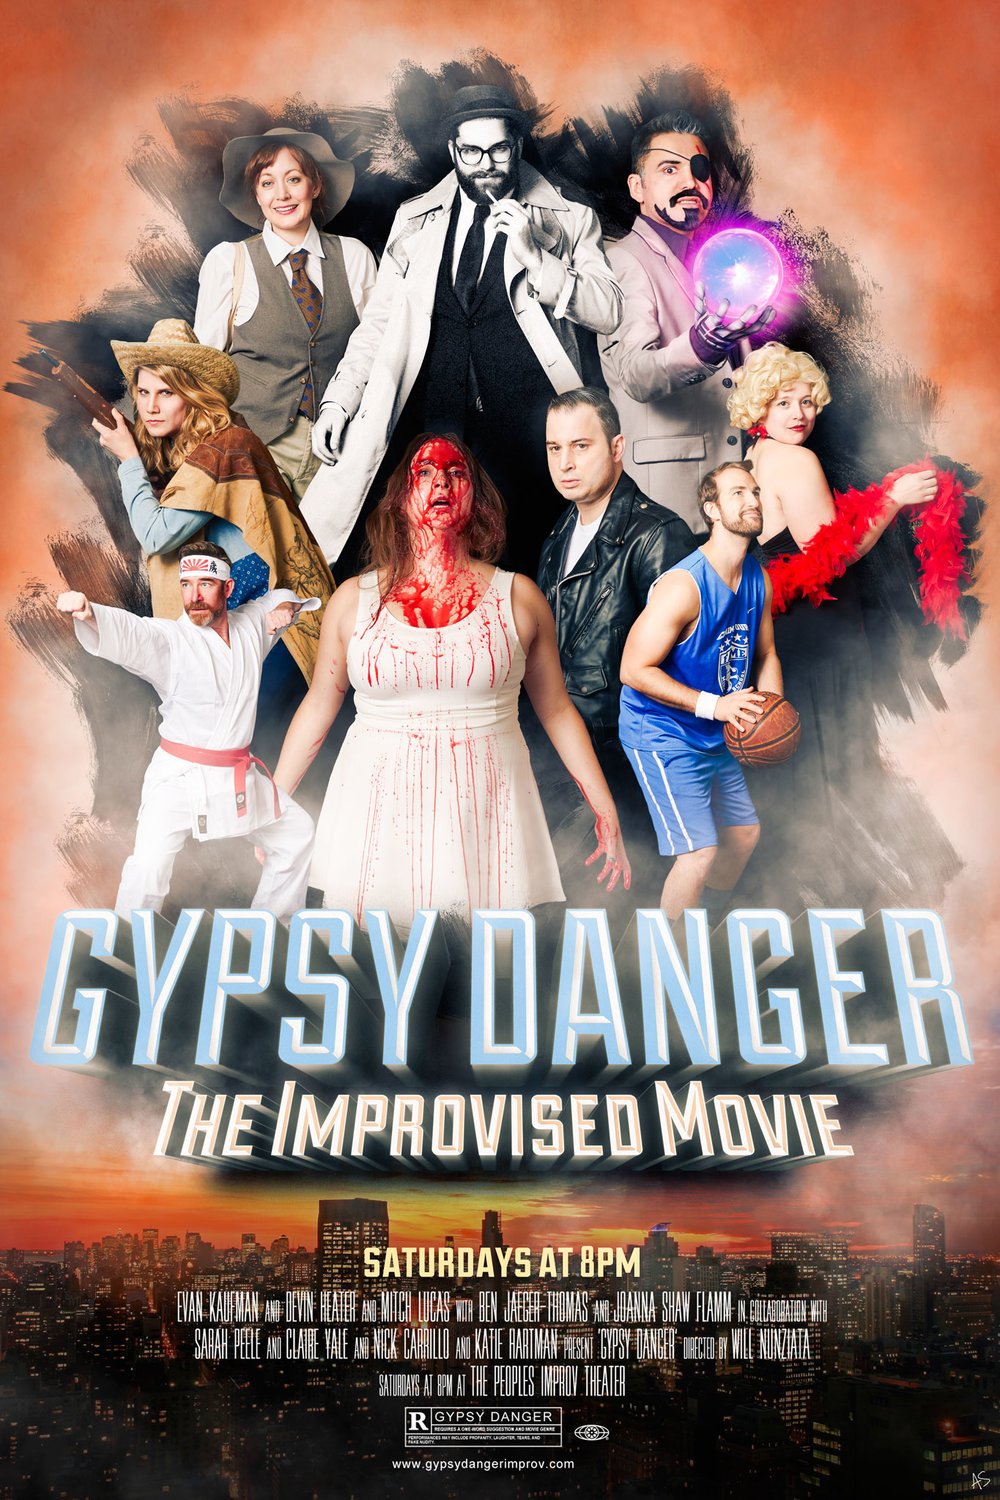 Gypsy-Danger-Final-Poster-Web.jpg